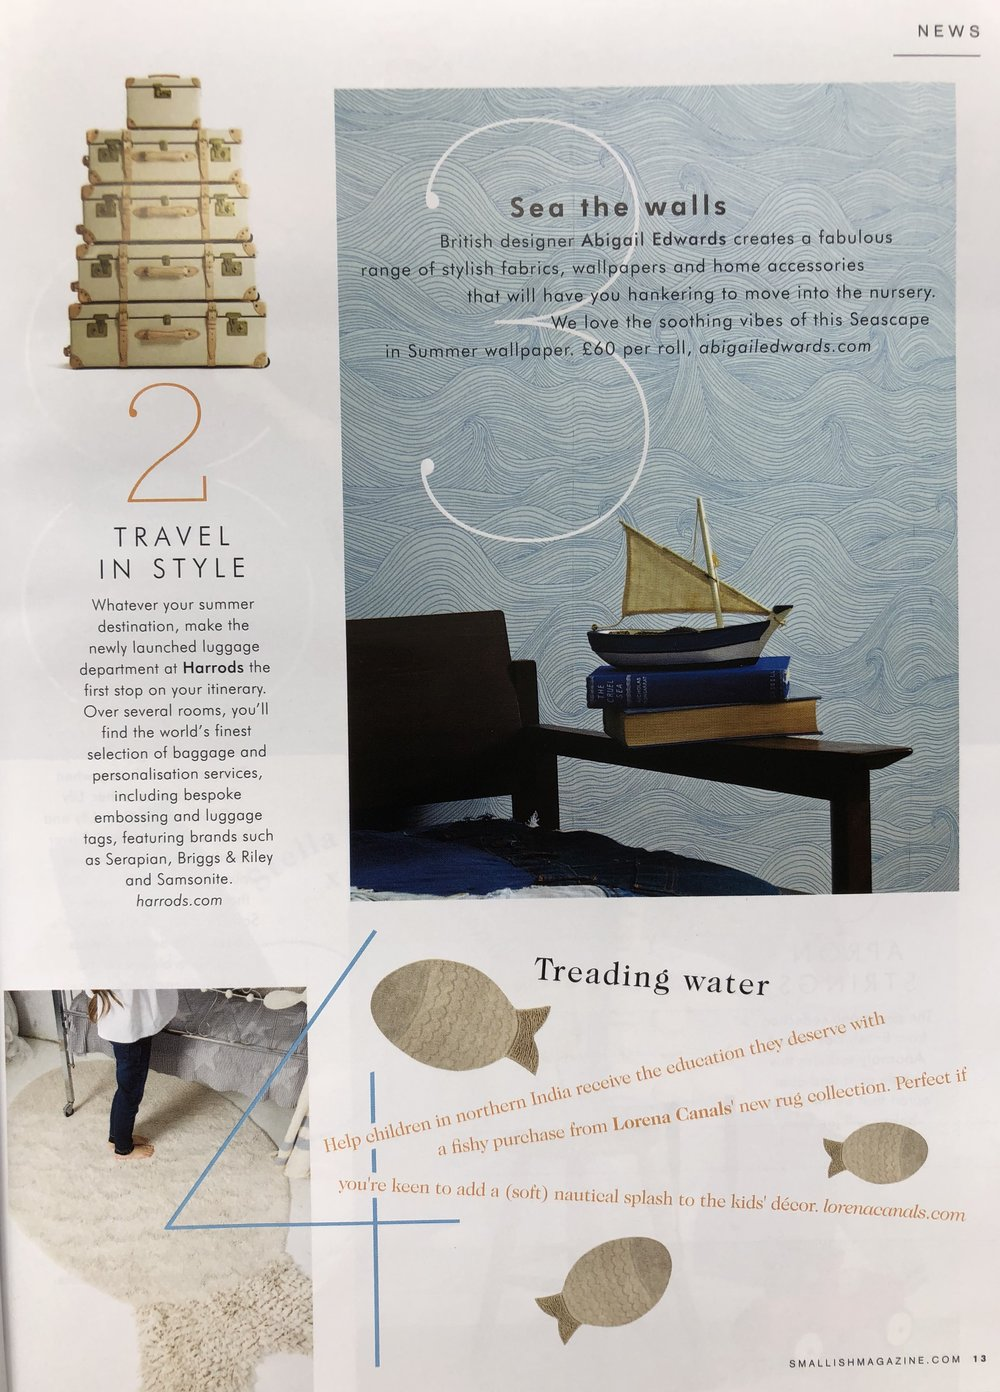 Seascape wallpaper in Summer in Smallish magazine